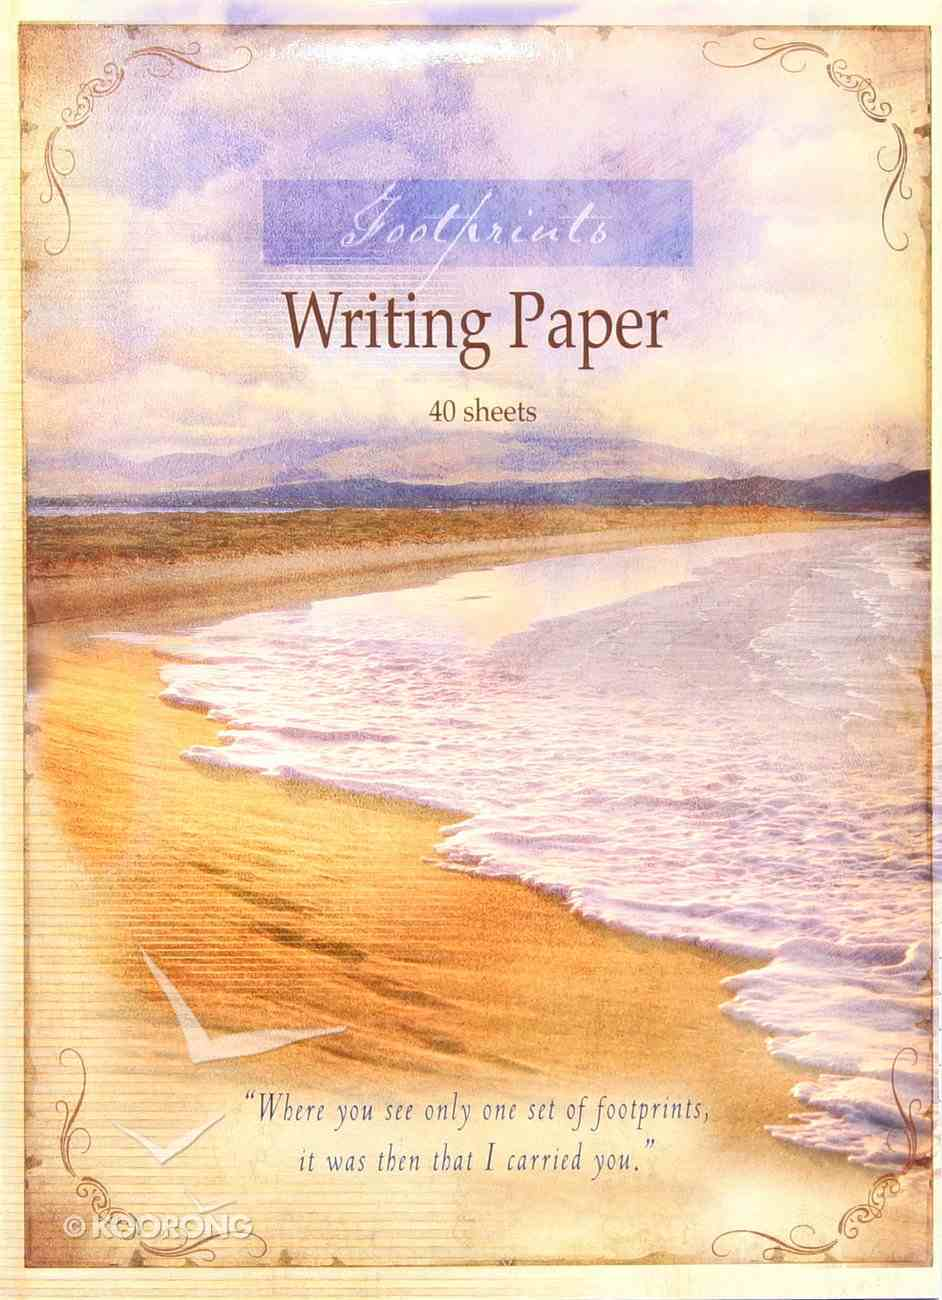 Writing Paper: Footprints Stationery